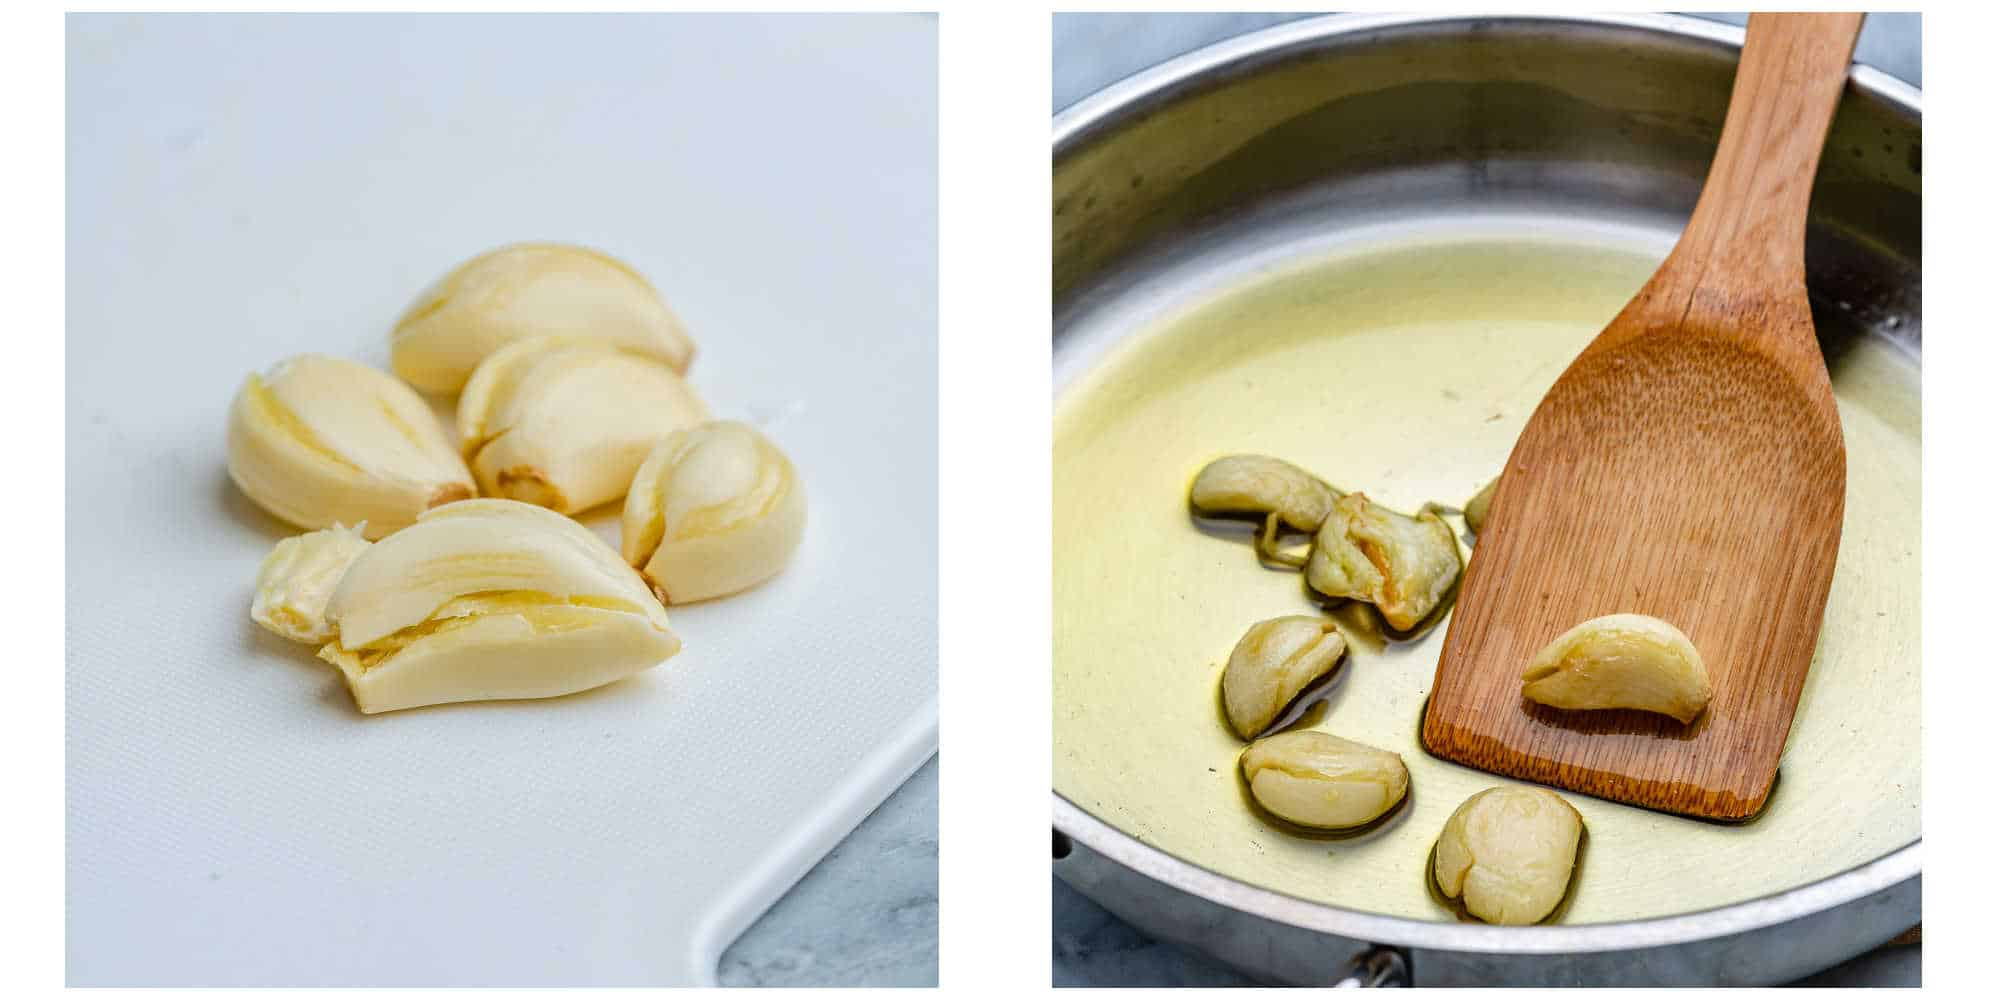 collage of crushed garlic on left and cooked garlic in oil and skillet on the right